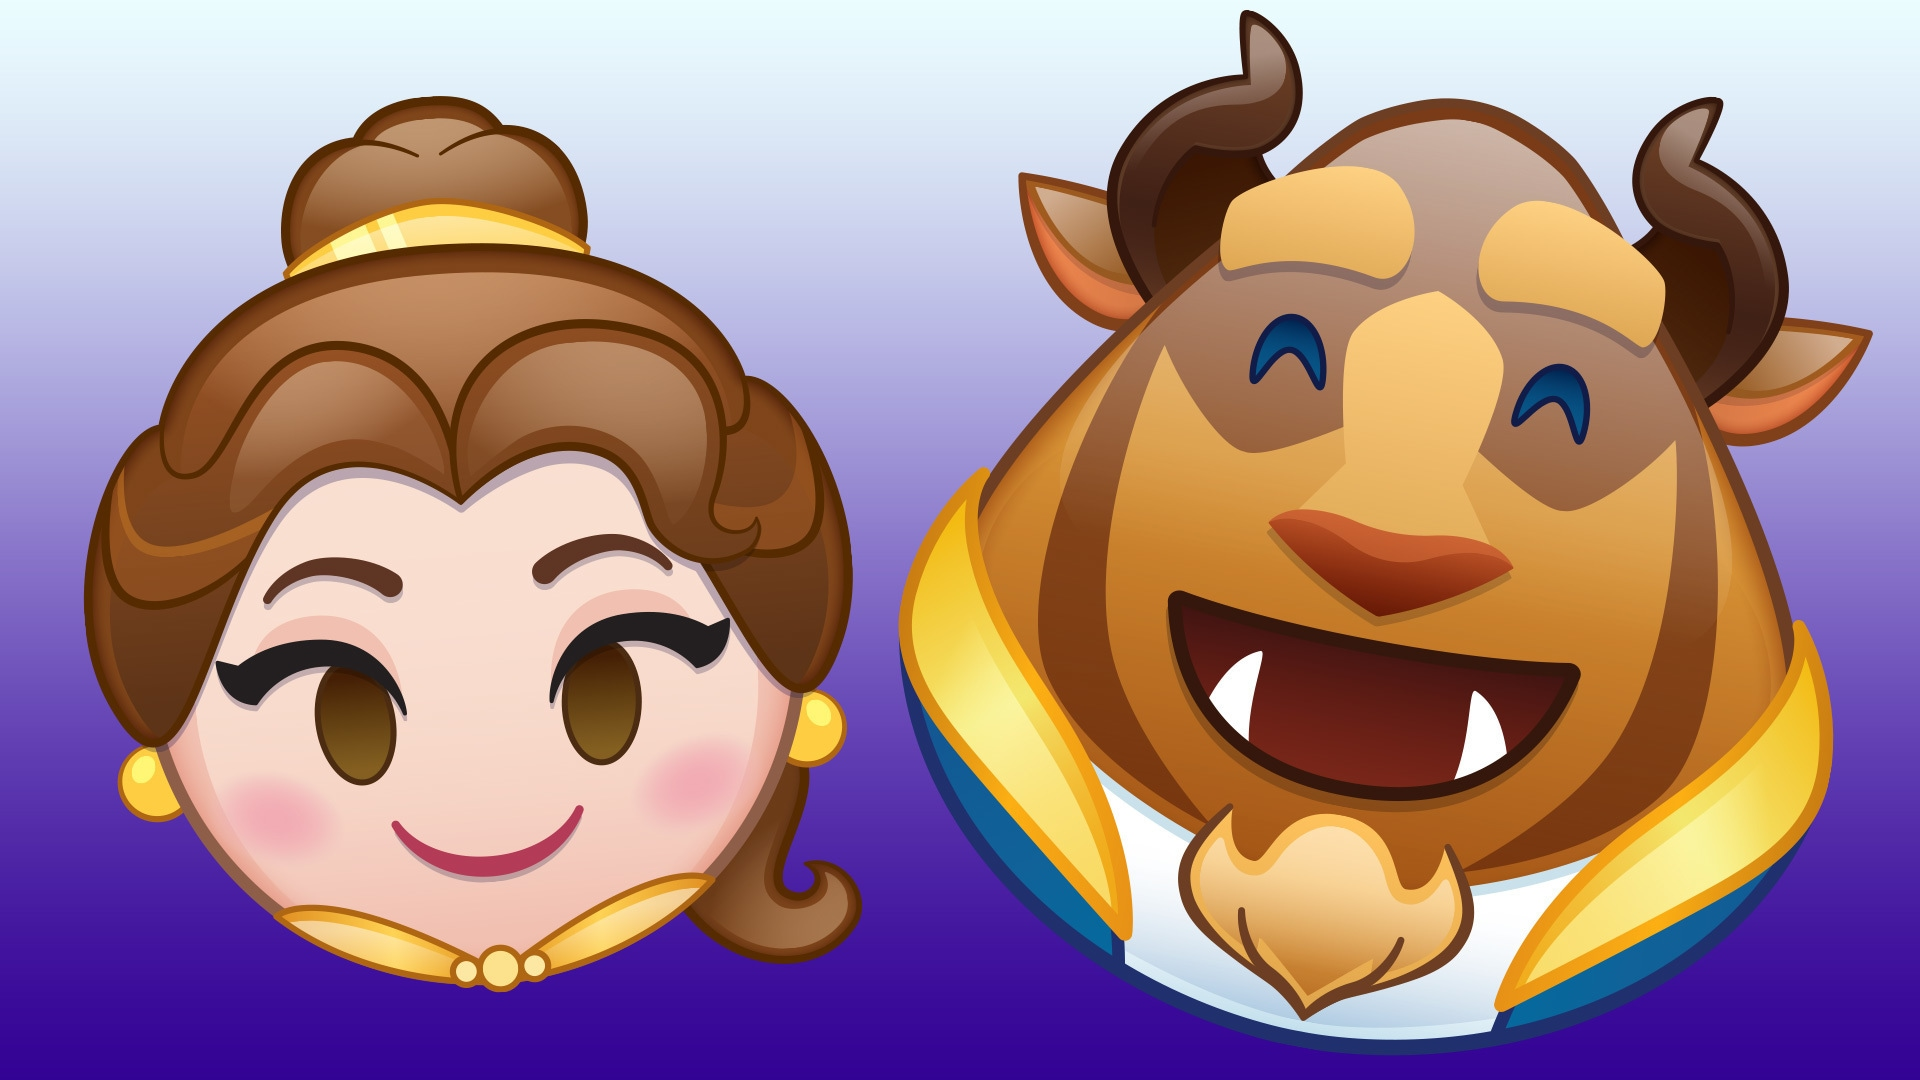 Beauty and the Beast As Told by Emoji